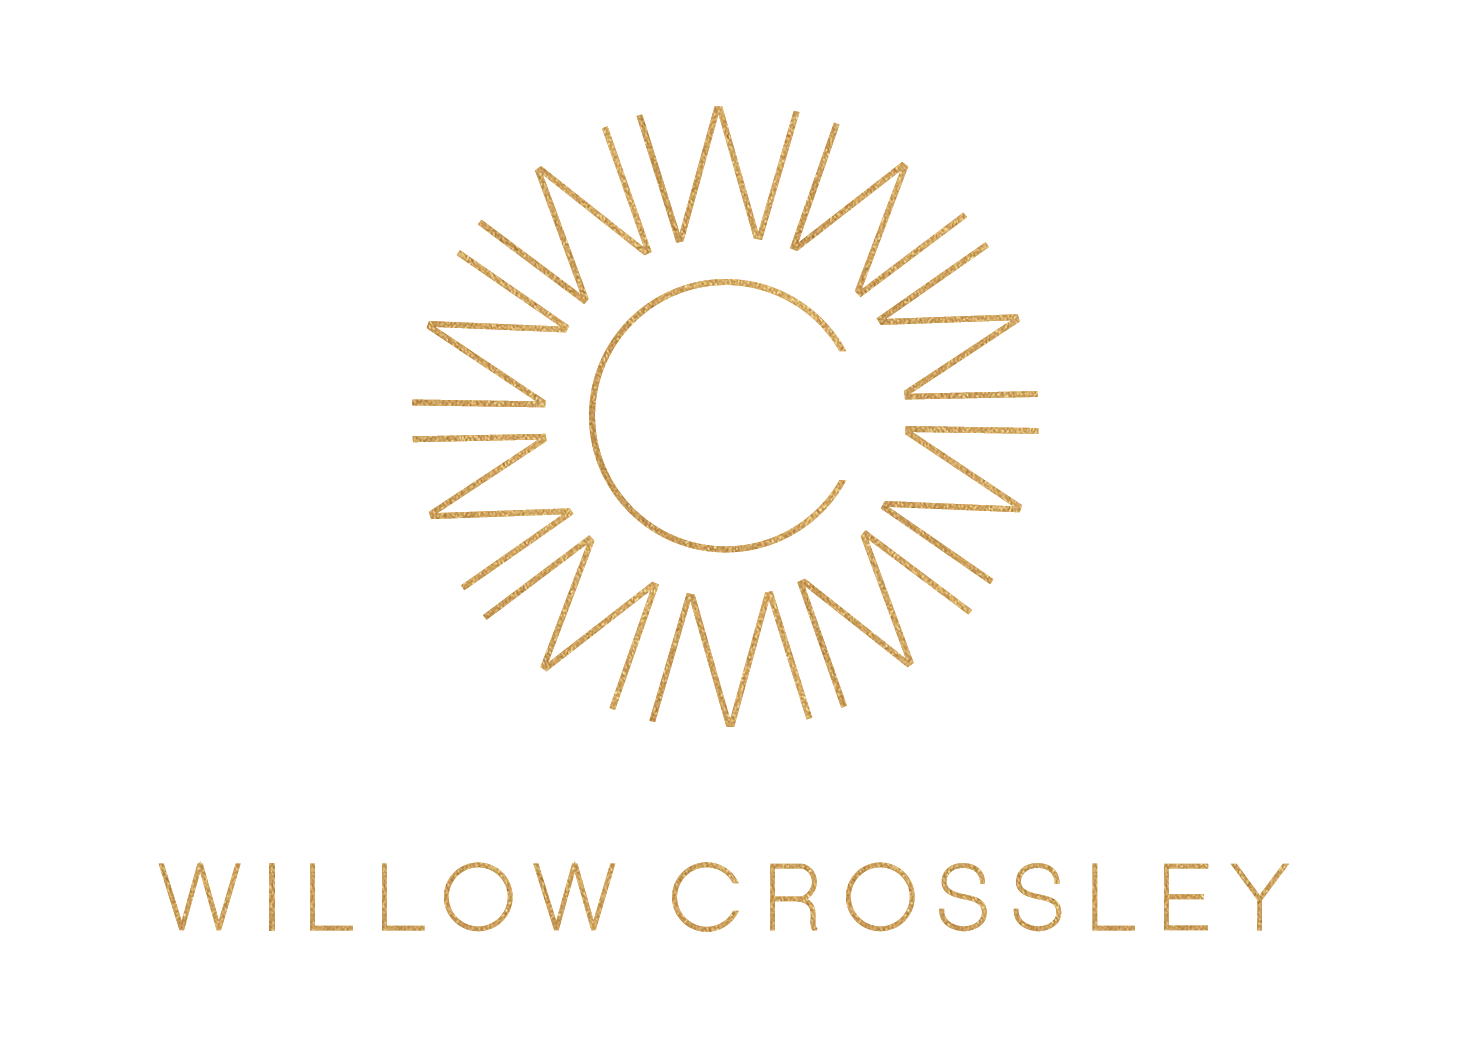 Willow Crossley